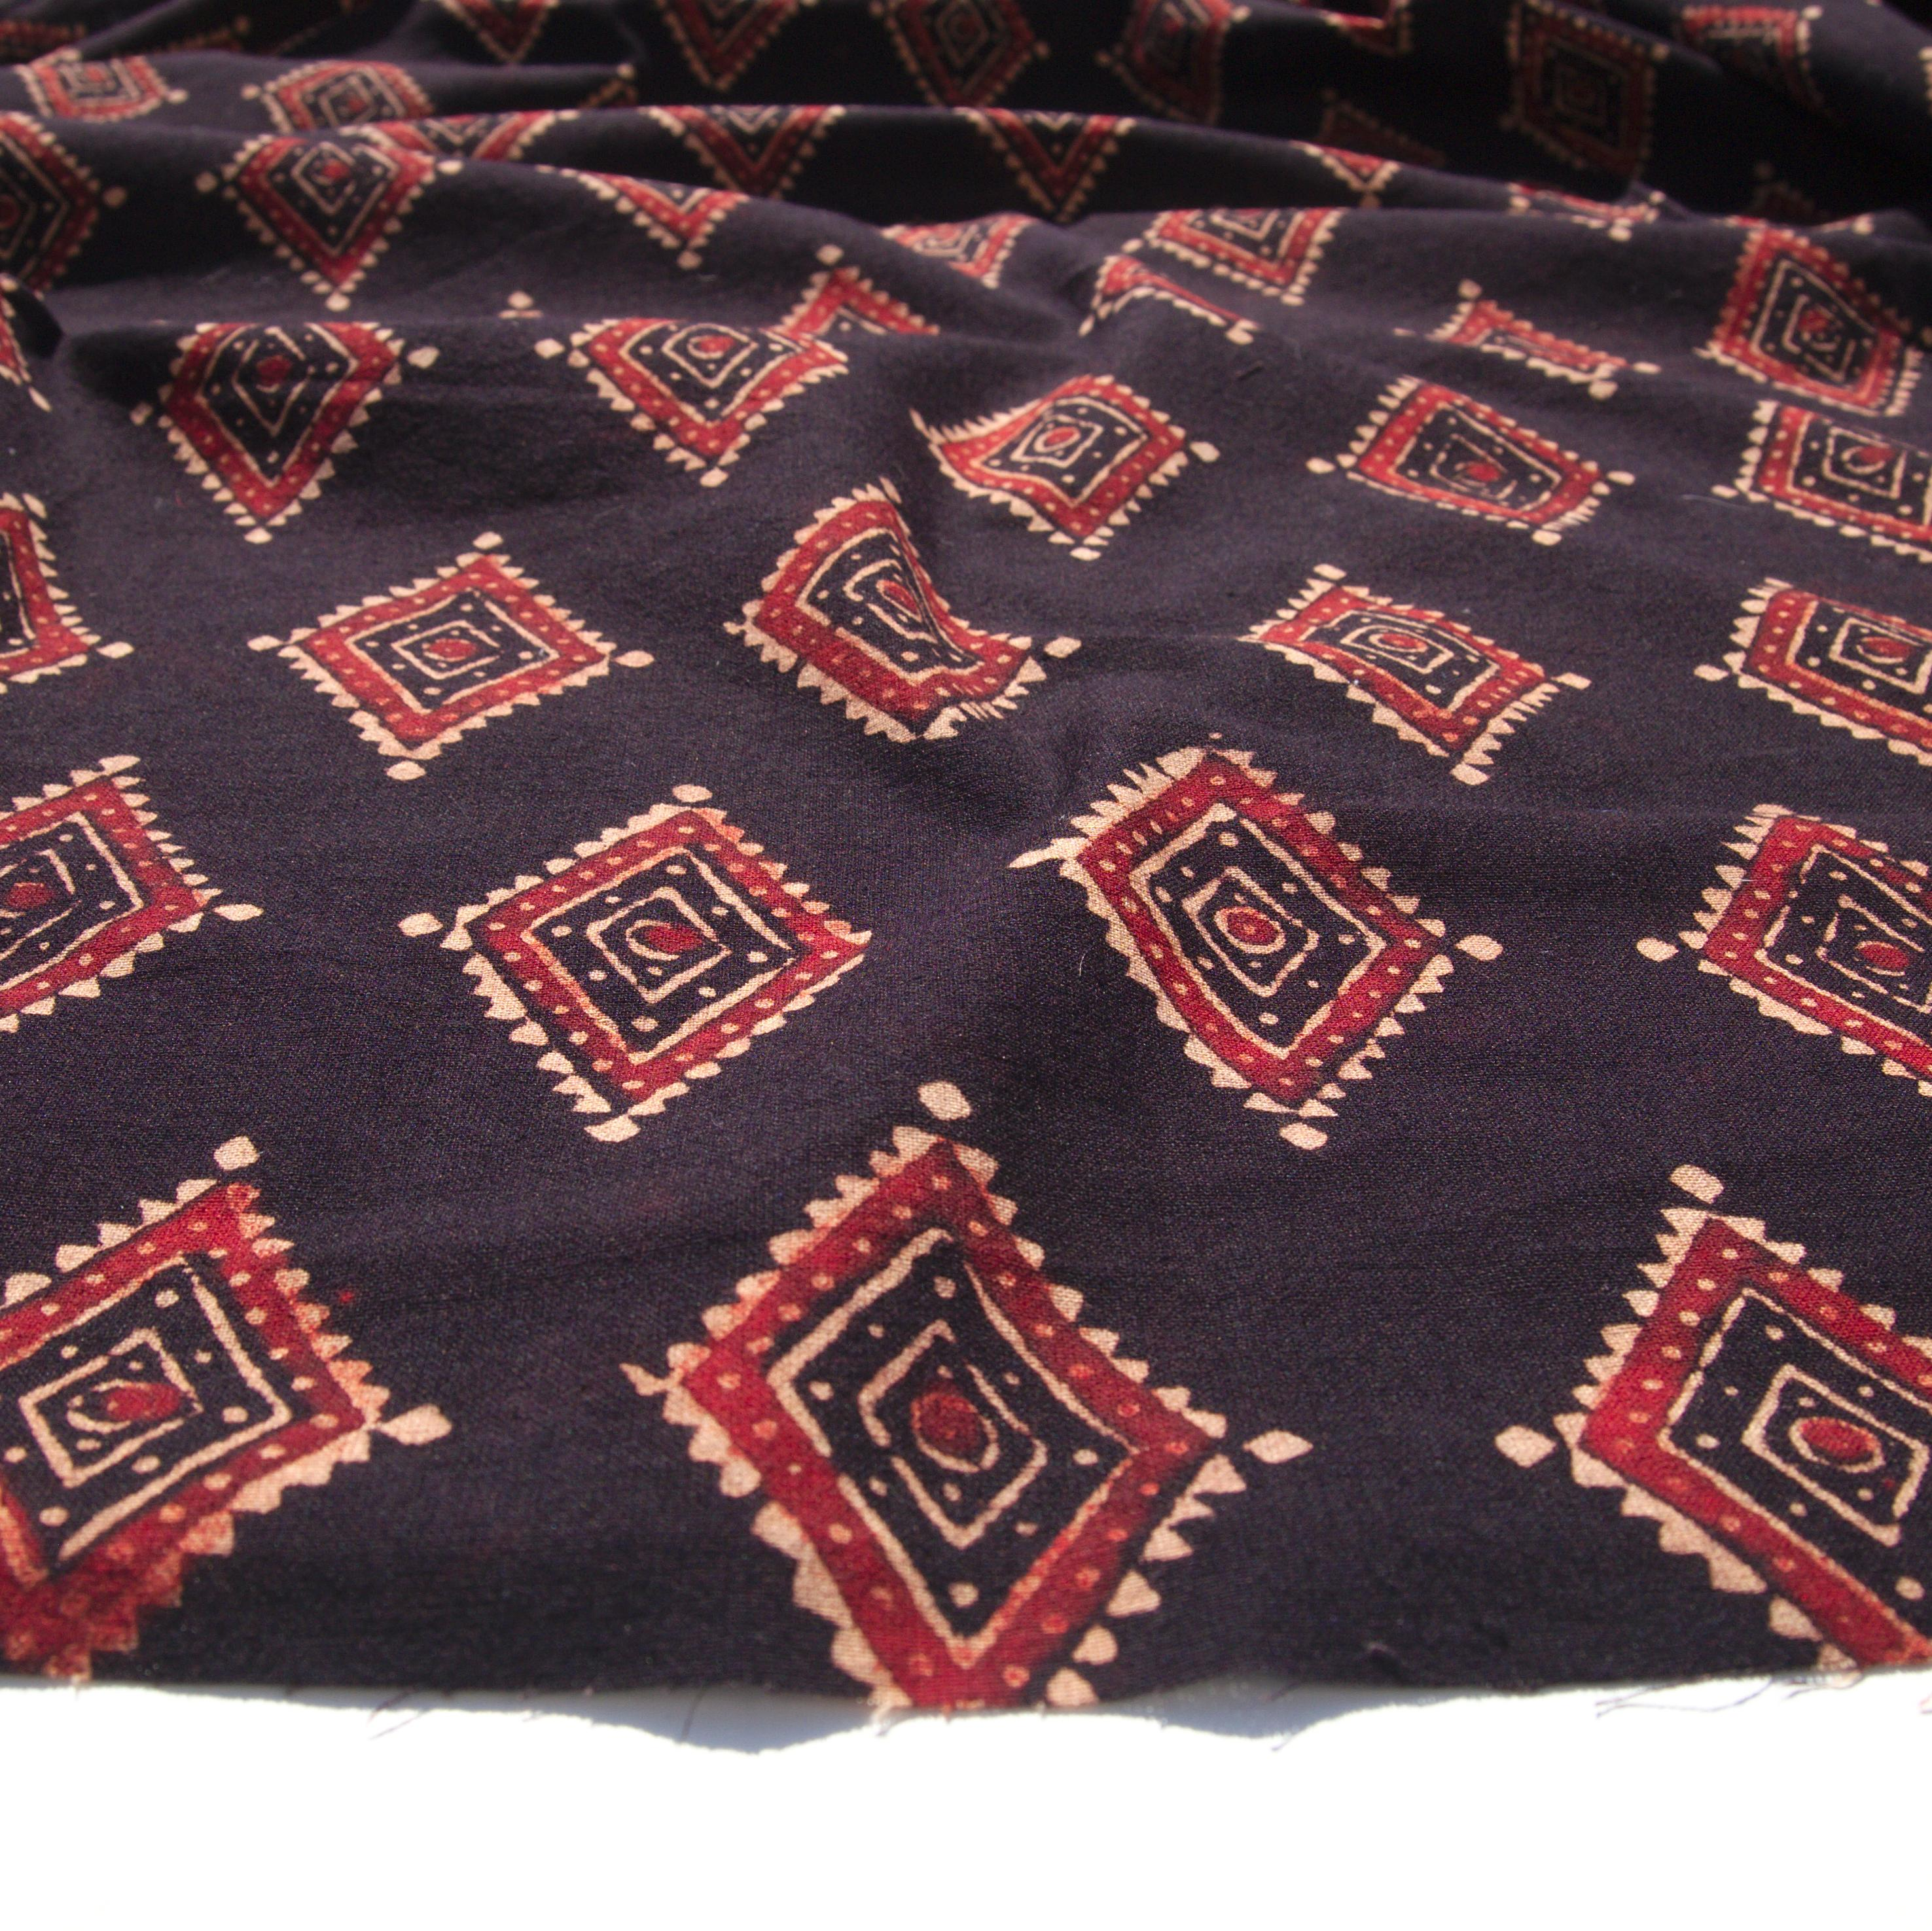 Block Printed Fabric, 100% Cotton, Ajrak Design: Black Base, Red, Beige Diamond. Angle